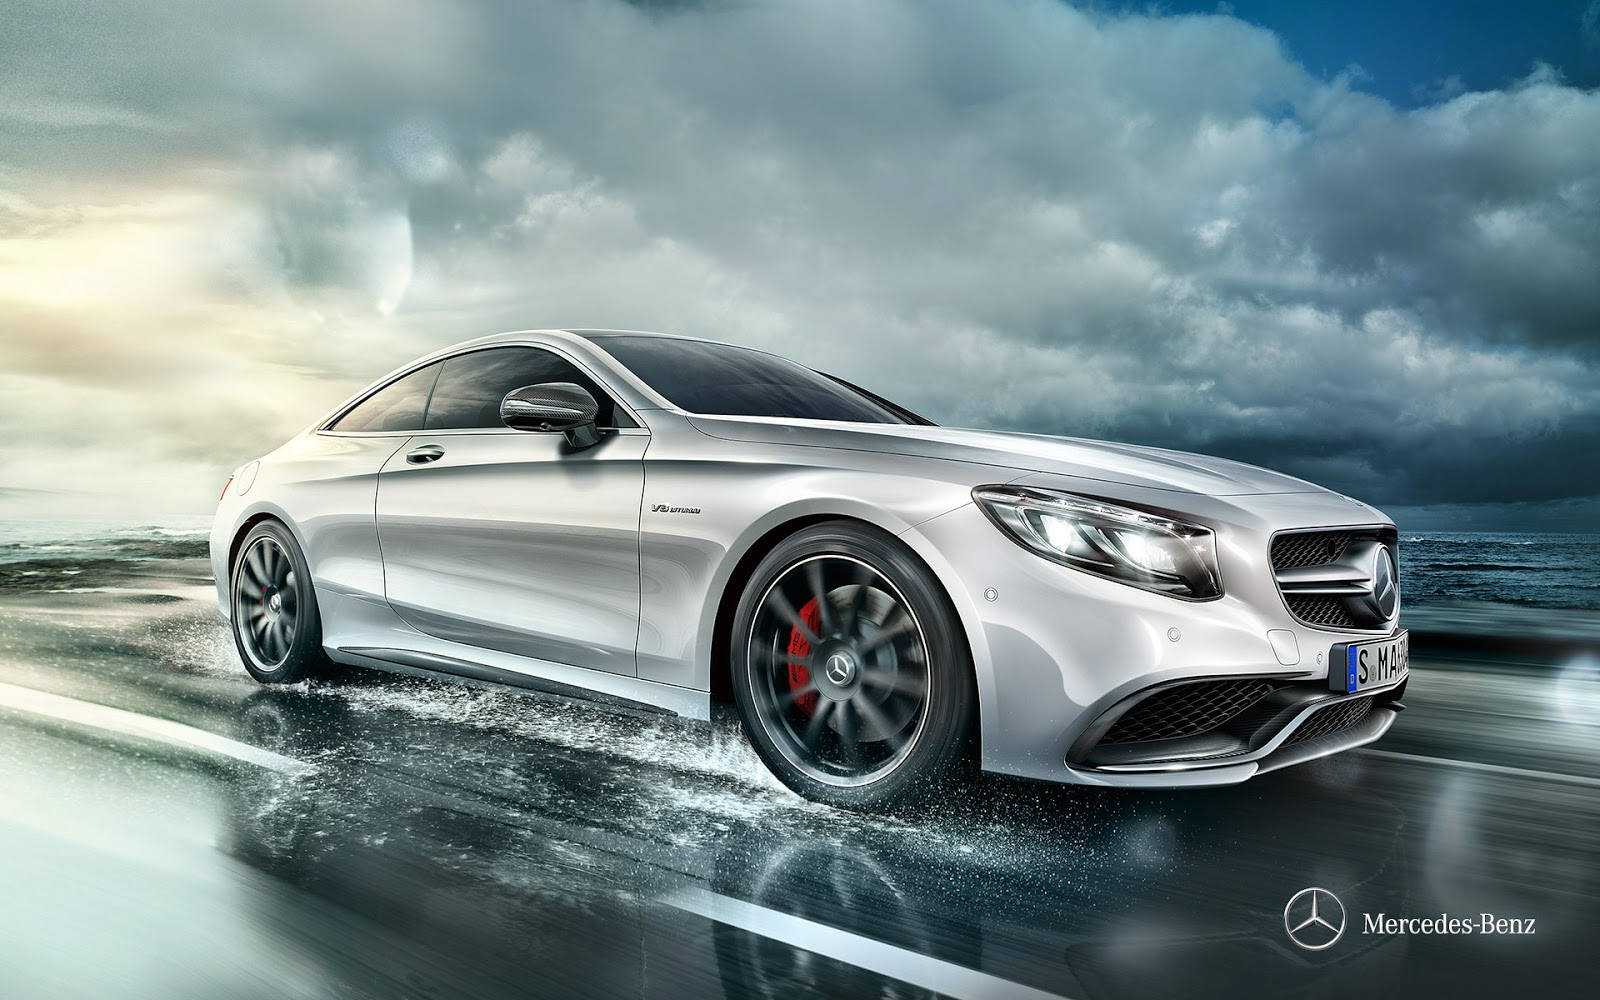 Mercedes S Class Coupe Hd Images Hd Wallpaper With Cars